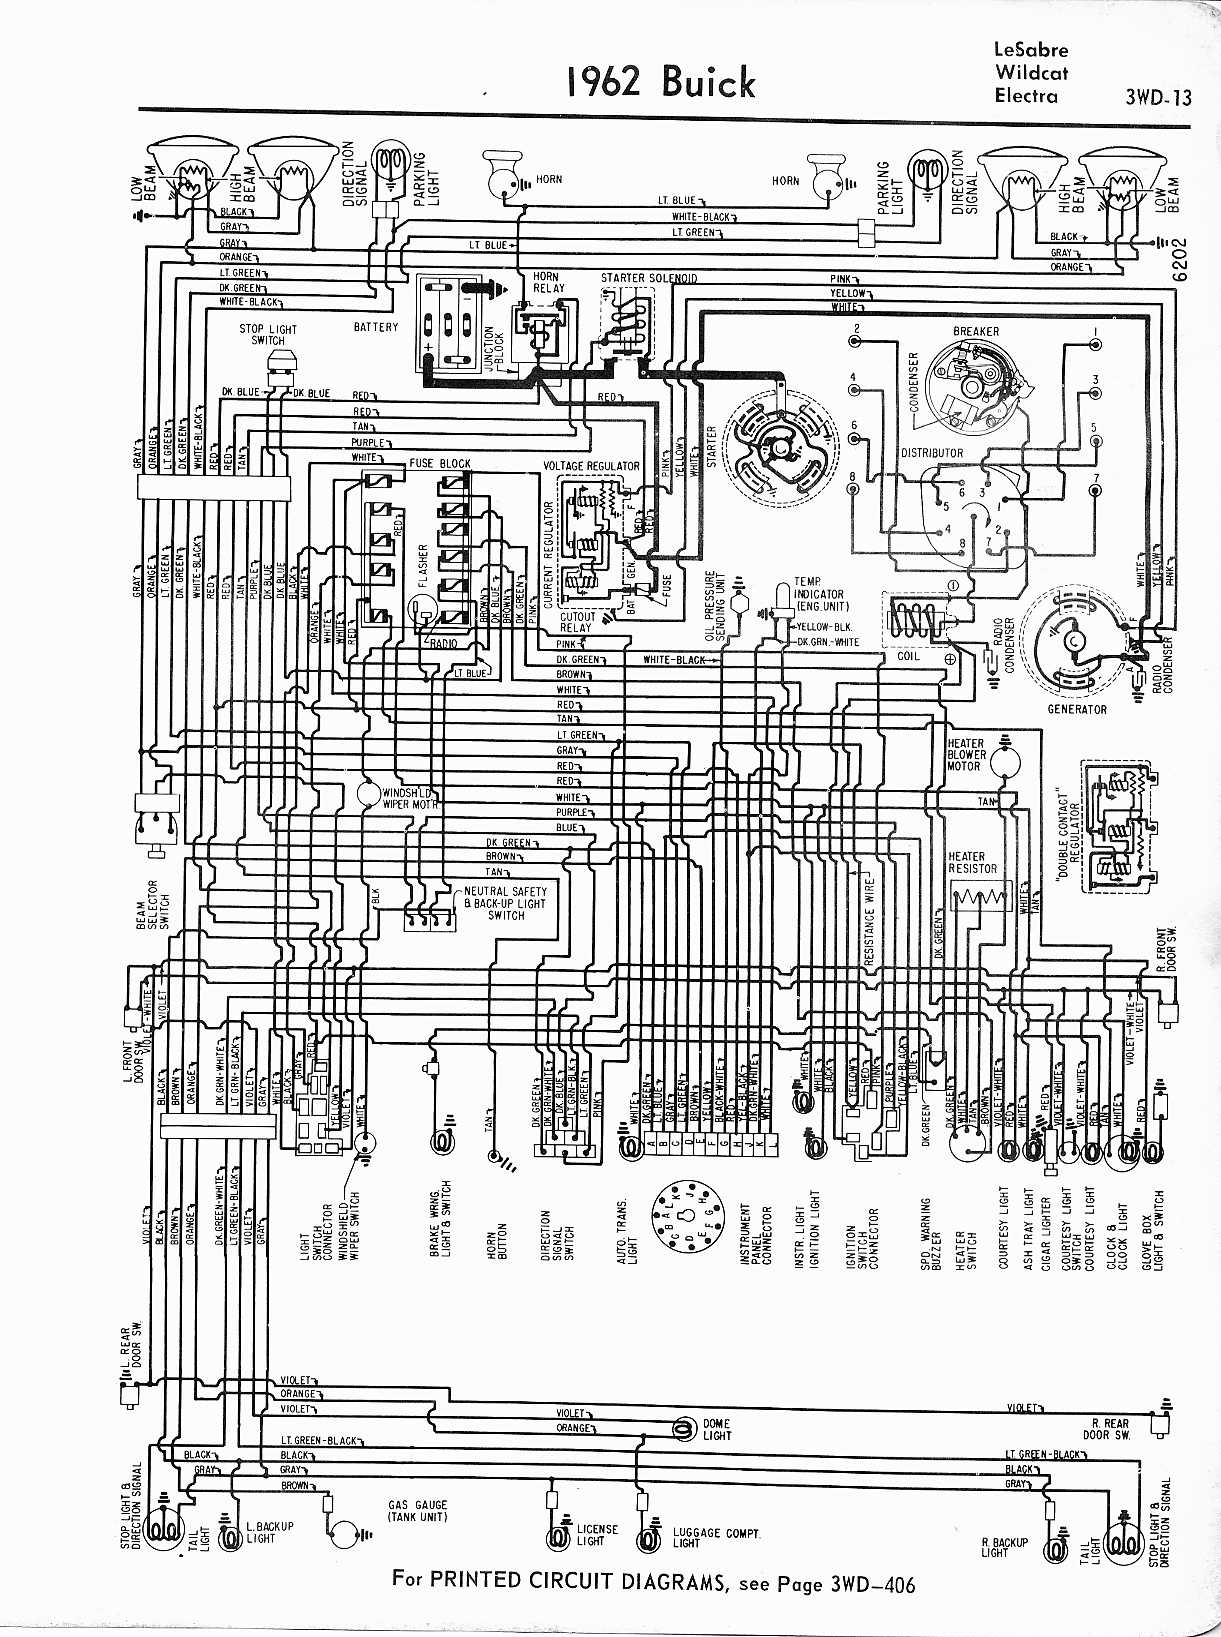 MWireBuic65_3WD 013 buick wiring diagrams 1957 1965 GM Turn Signal Switch Diagram at bakdesigns.co